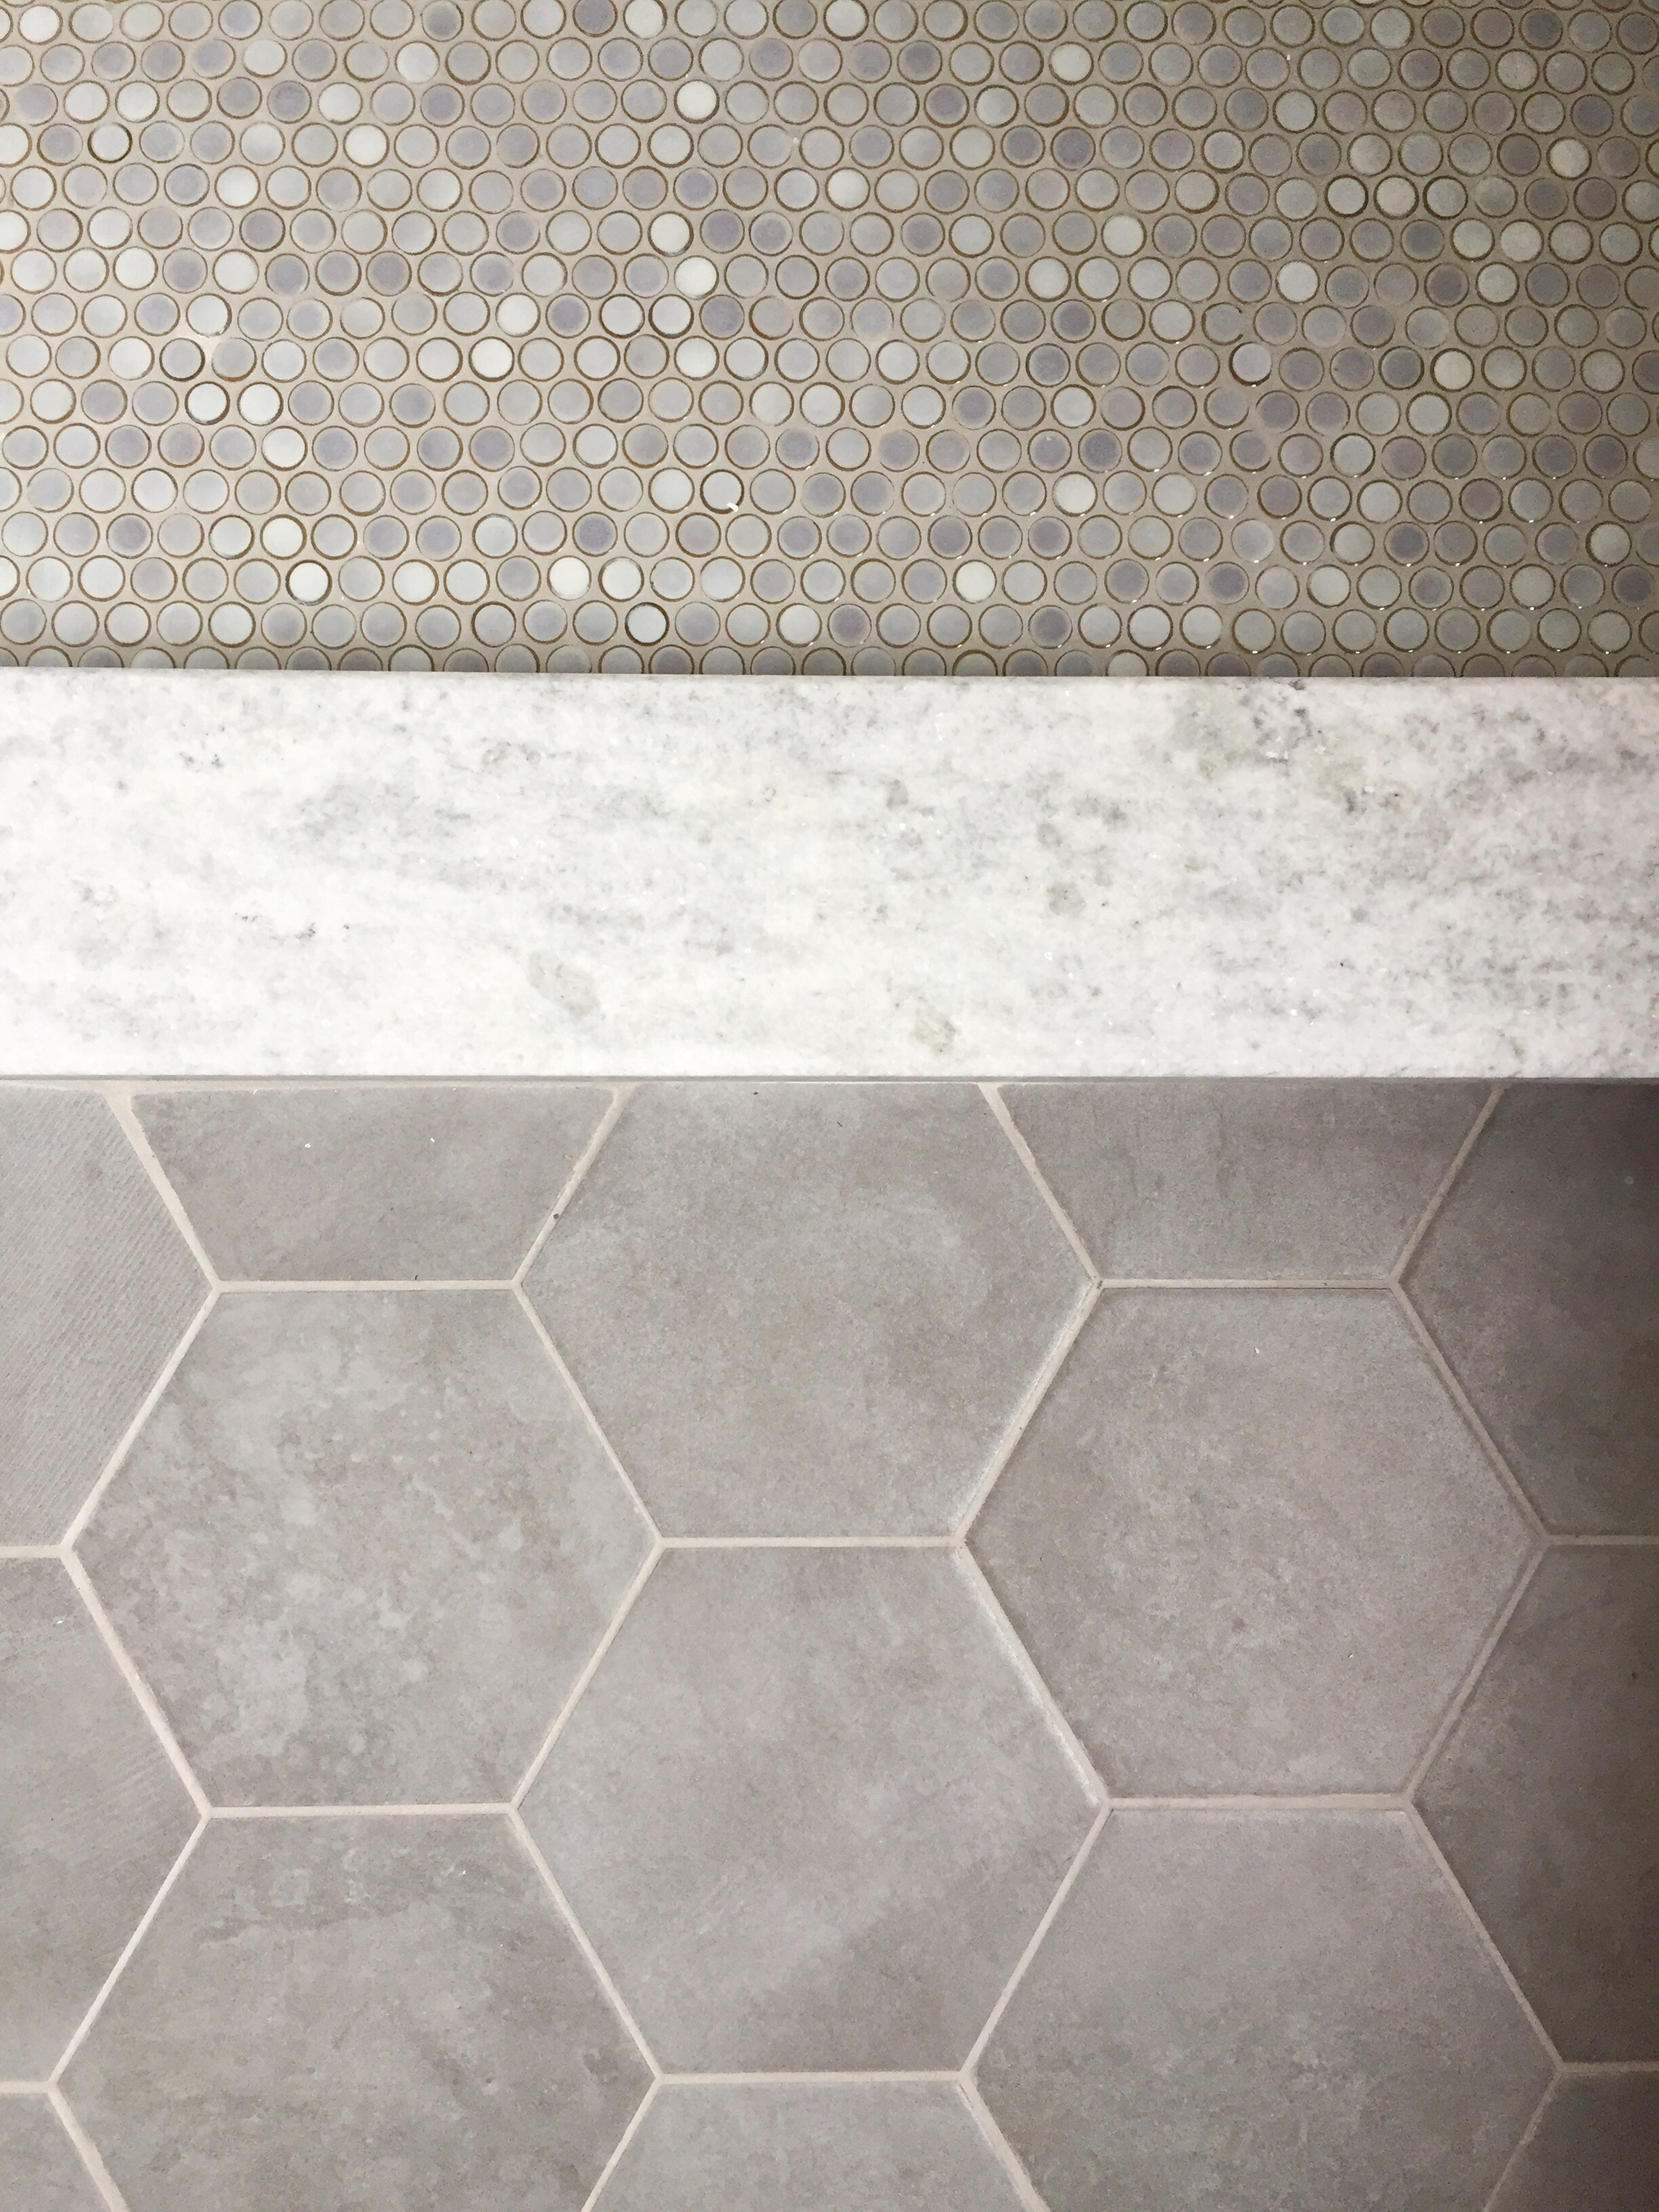 penny tile and hex flooring